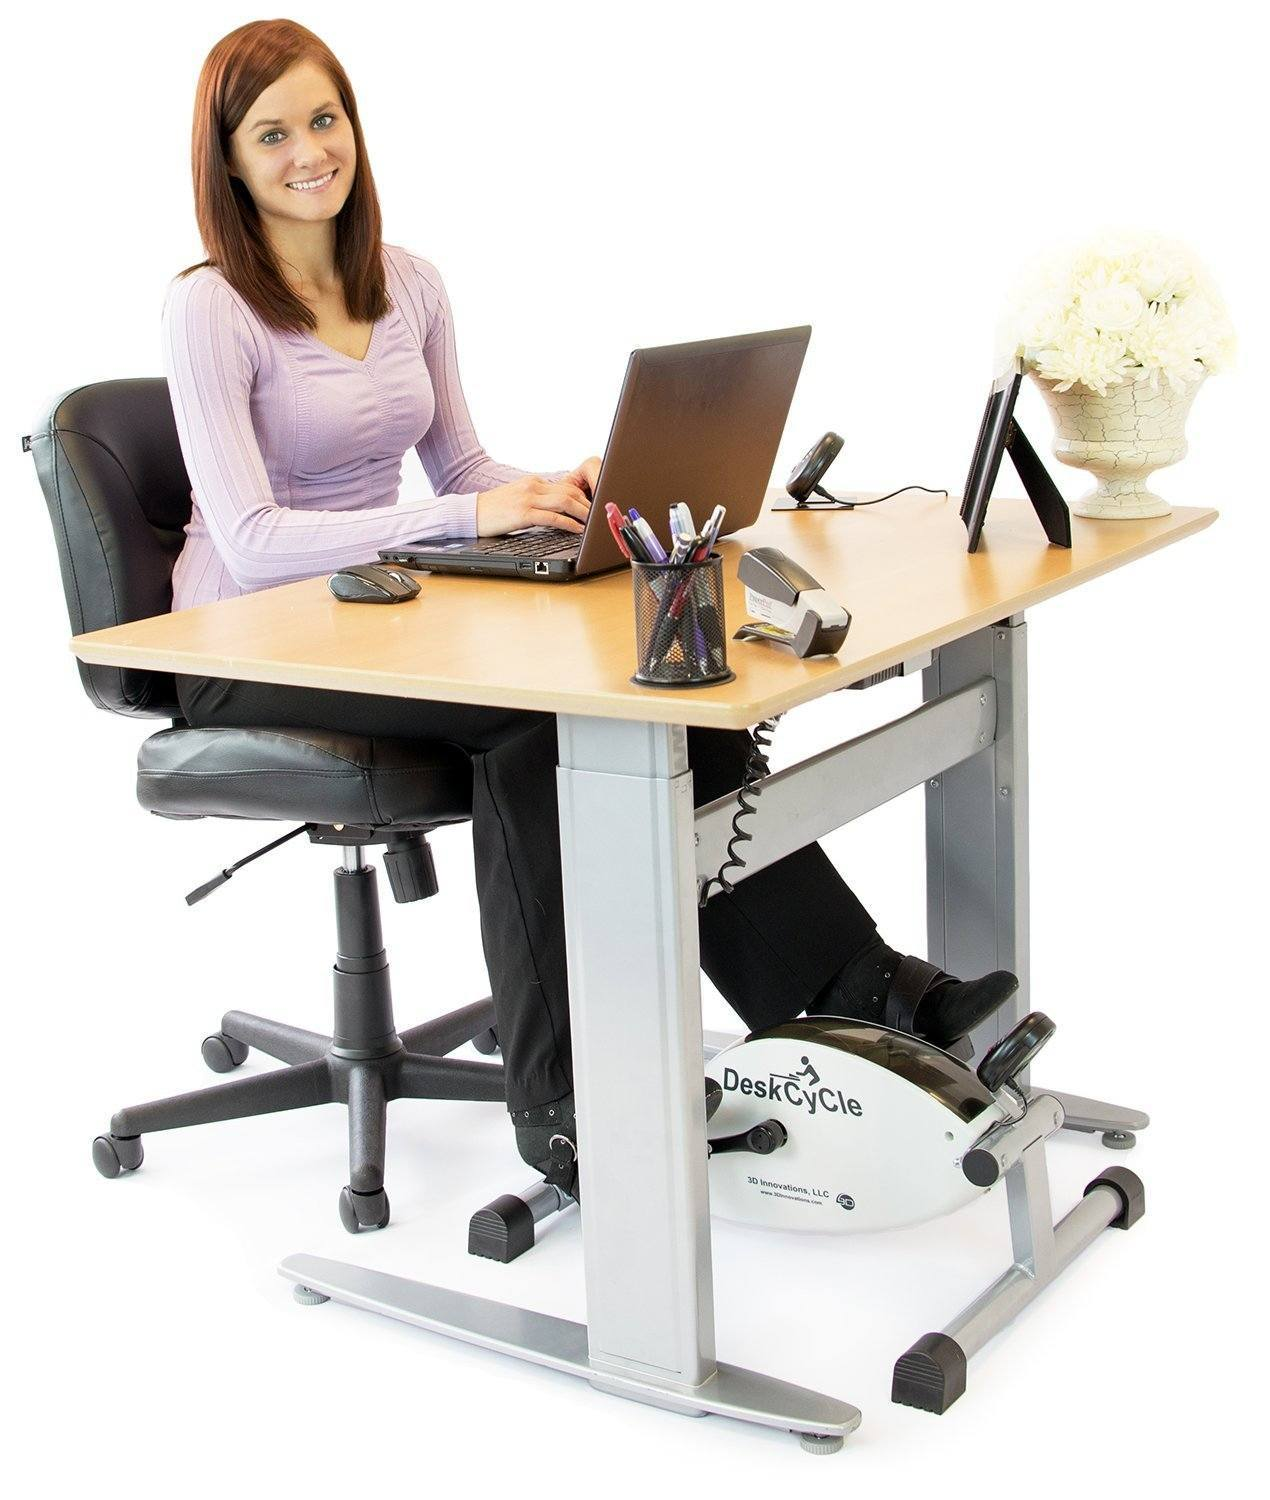 deskcycle desk exercise bike stay active at work fitness gizmos. Black Bedroom Furniture Sets. Home Design Ideas